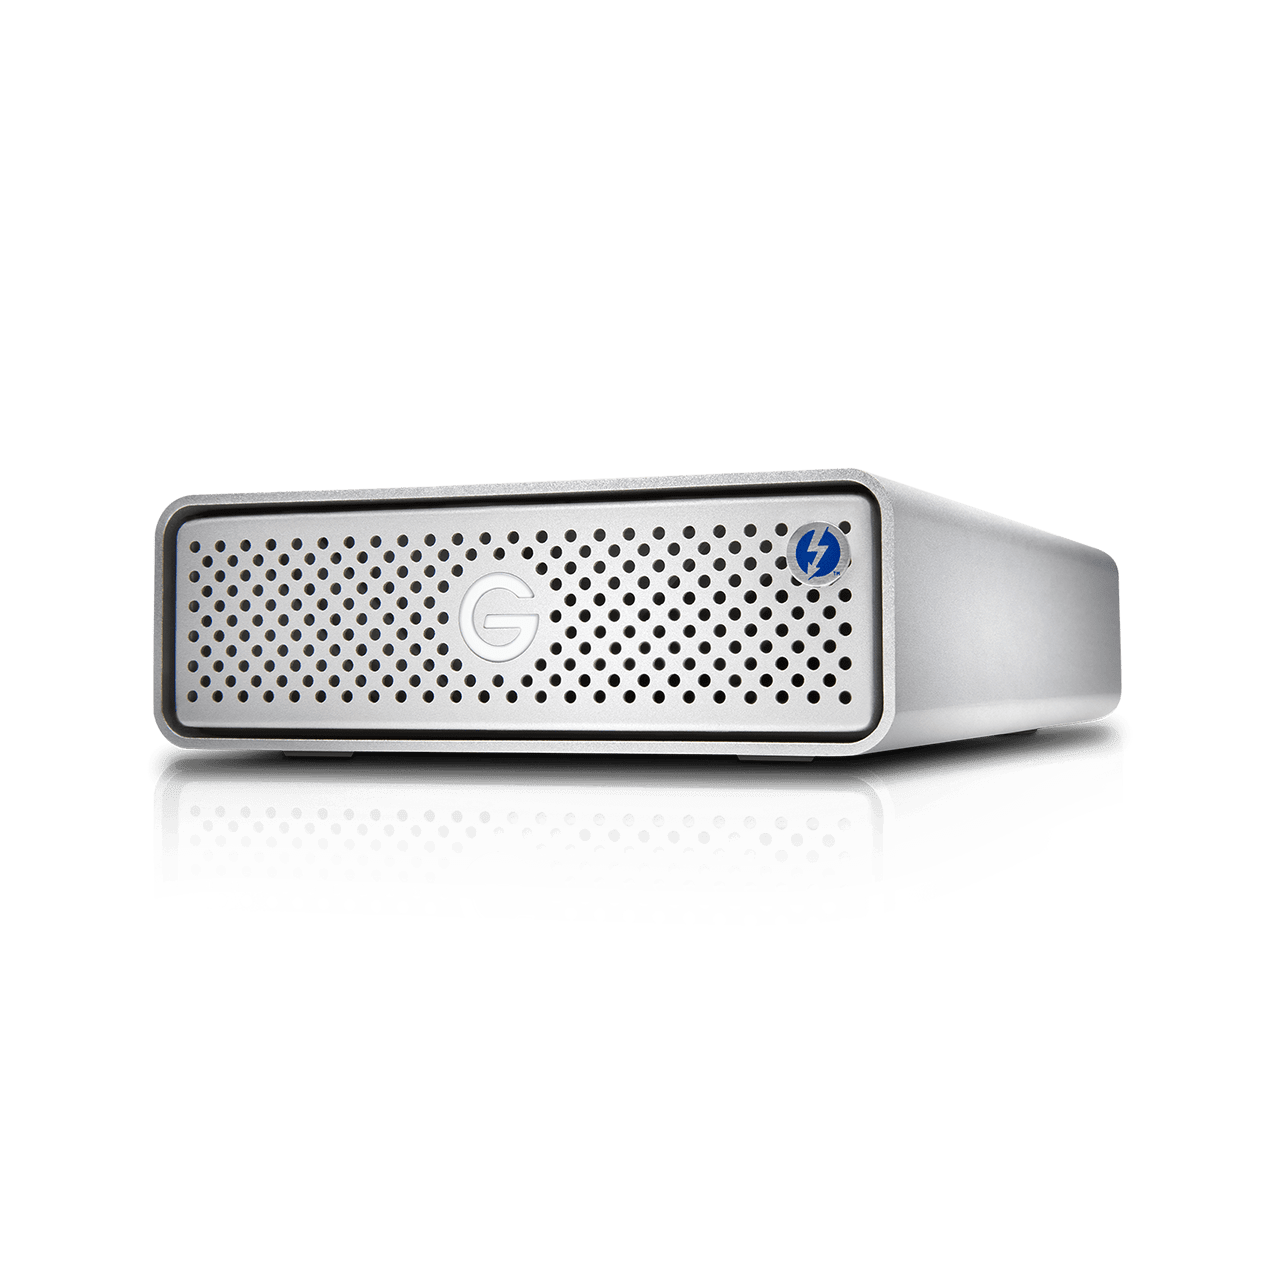 g-drive-with-tb3-frontangle-hr-png-thumb-1280-1280